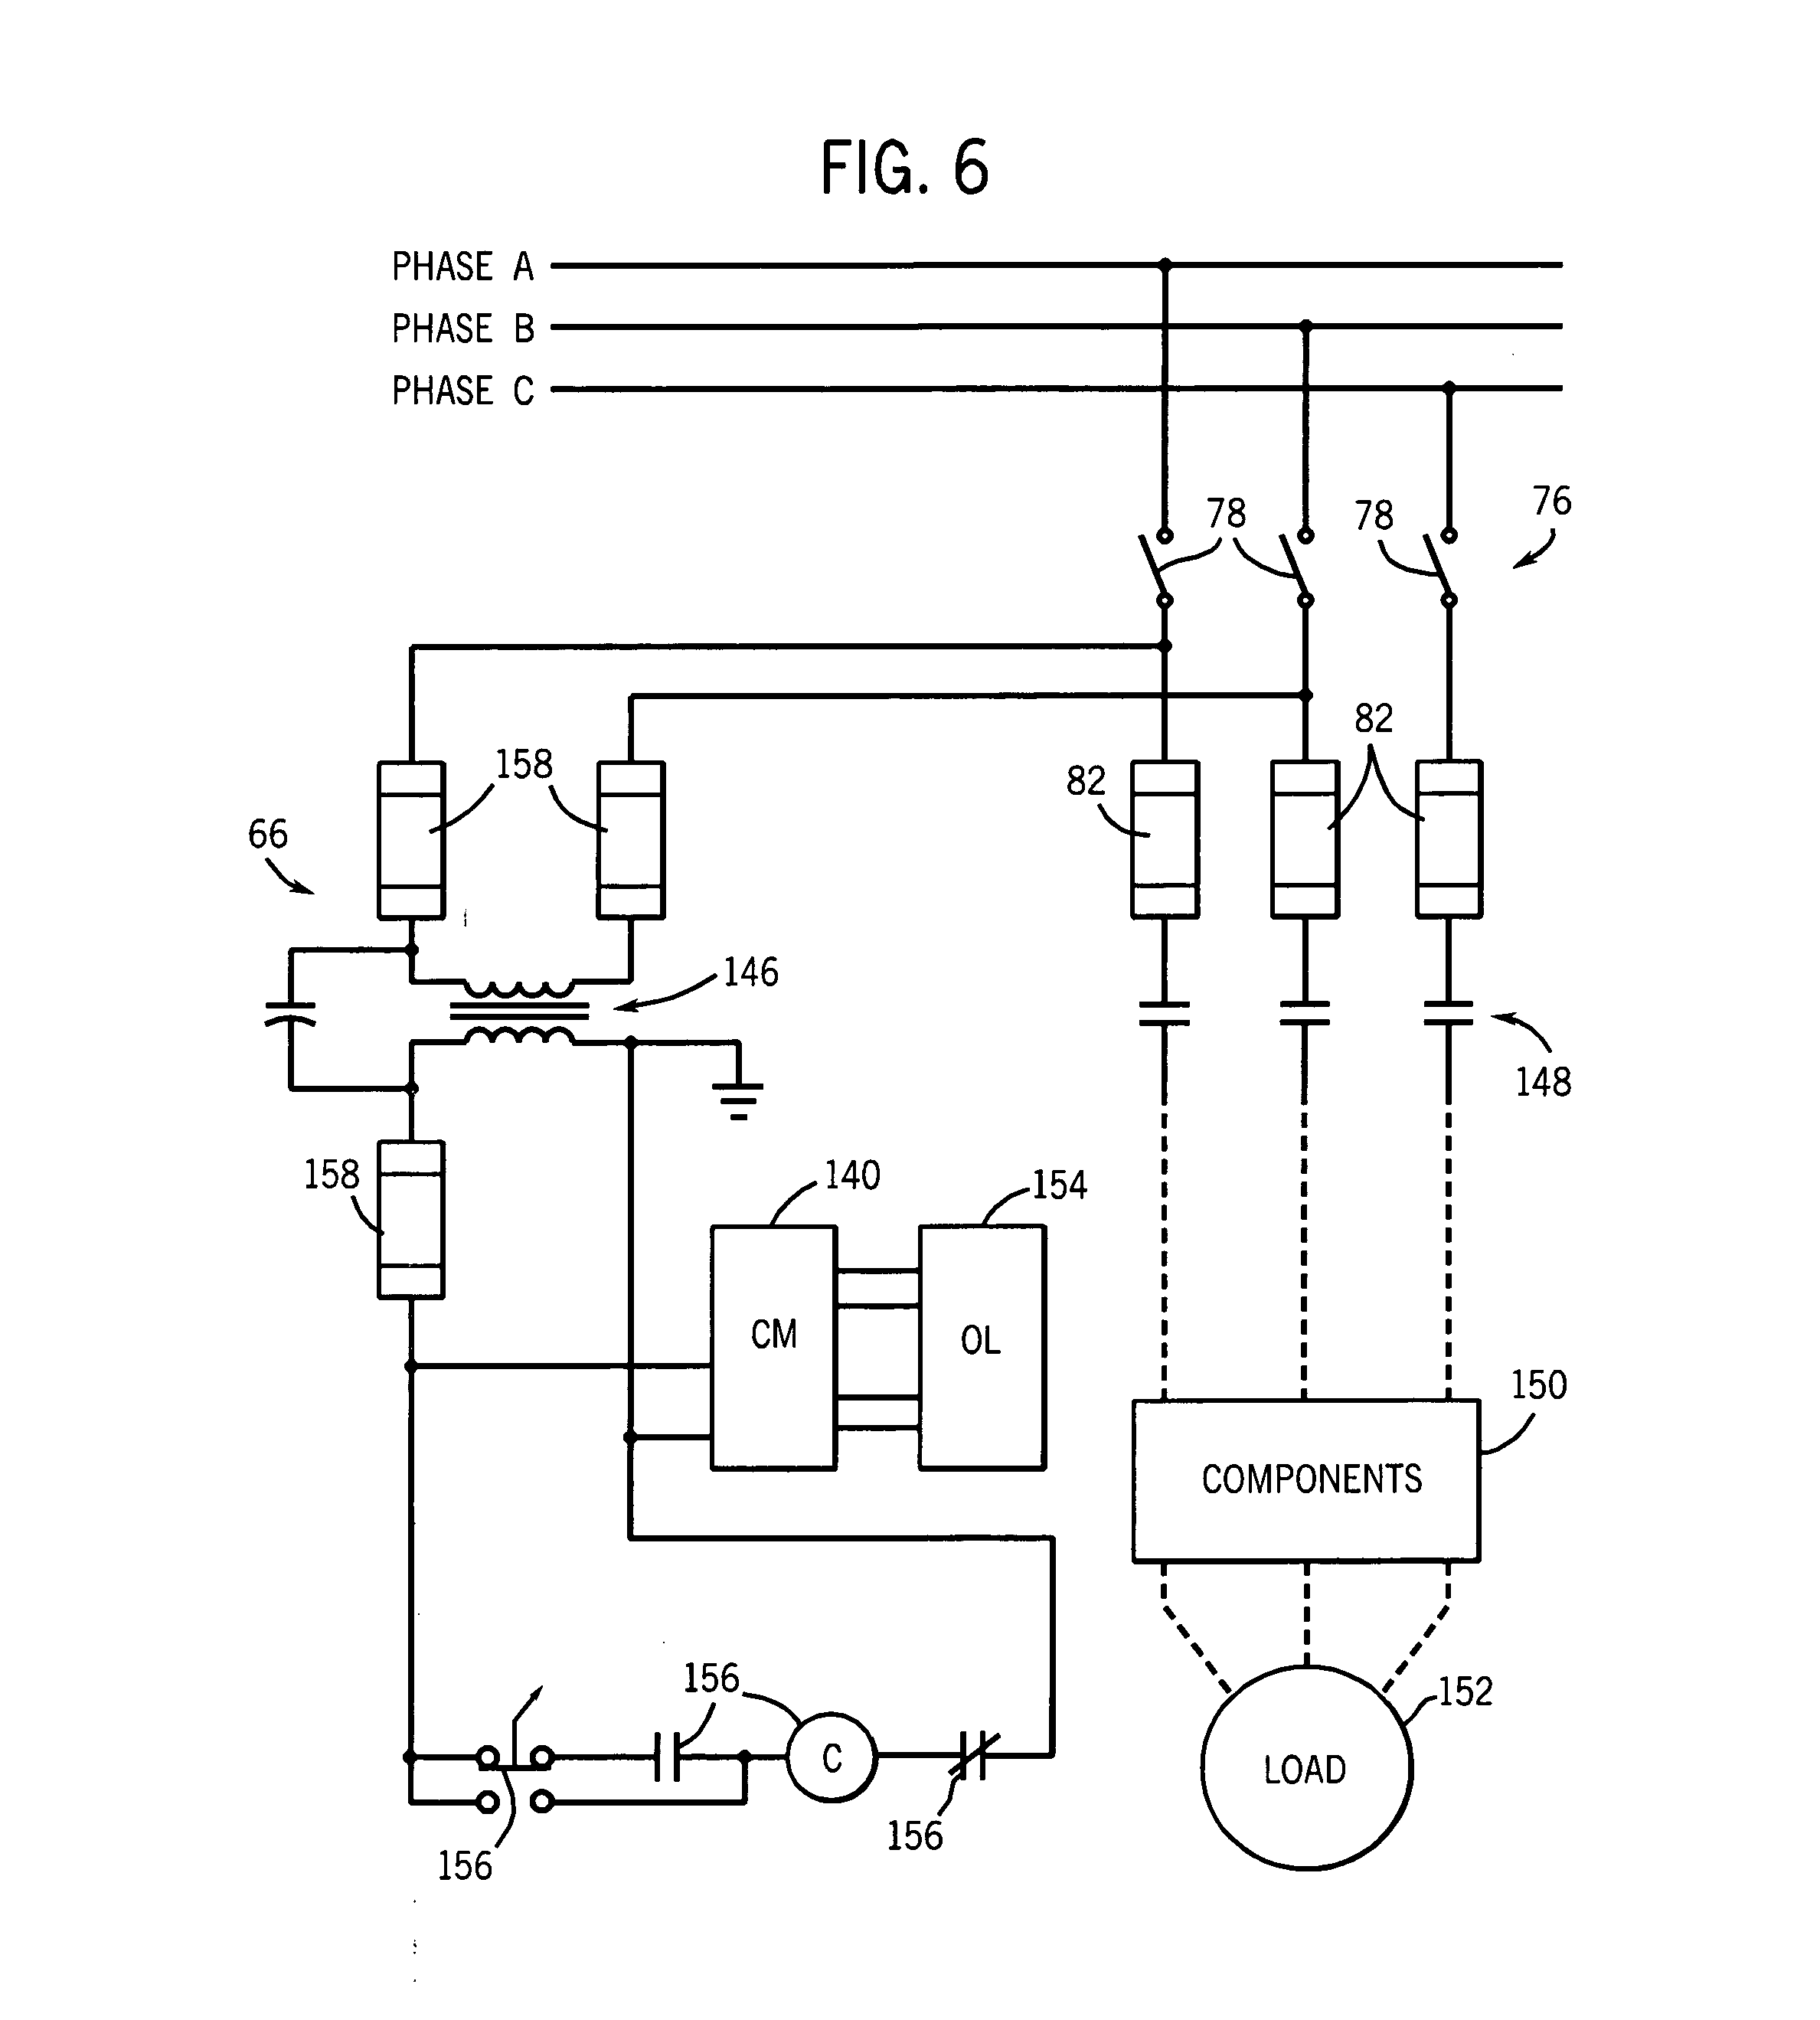 allen dley mcc wiring diagrams allen automotive wiring diagrams us20080137266a1 20080612 d00006